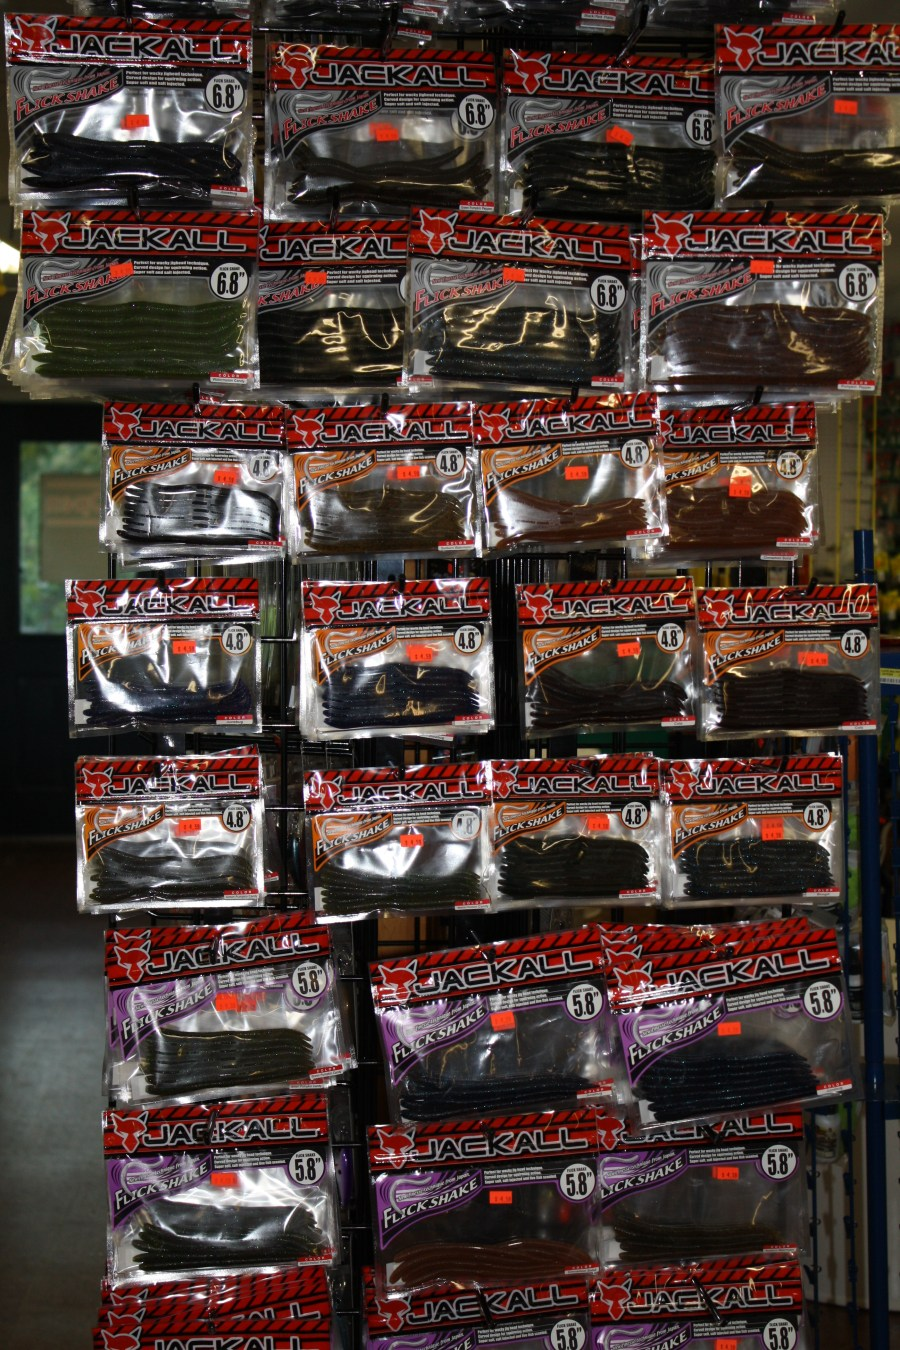 Jackall baits in various colors & sizes